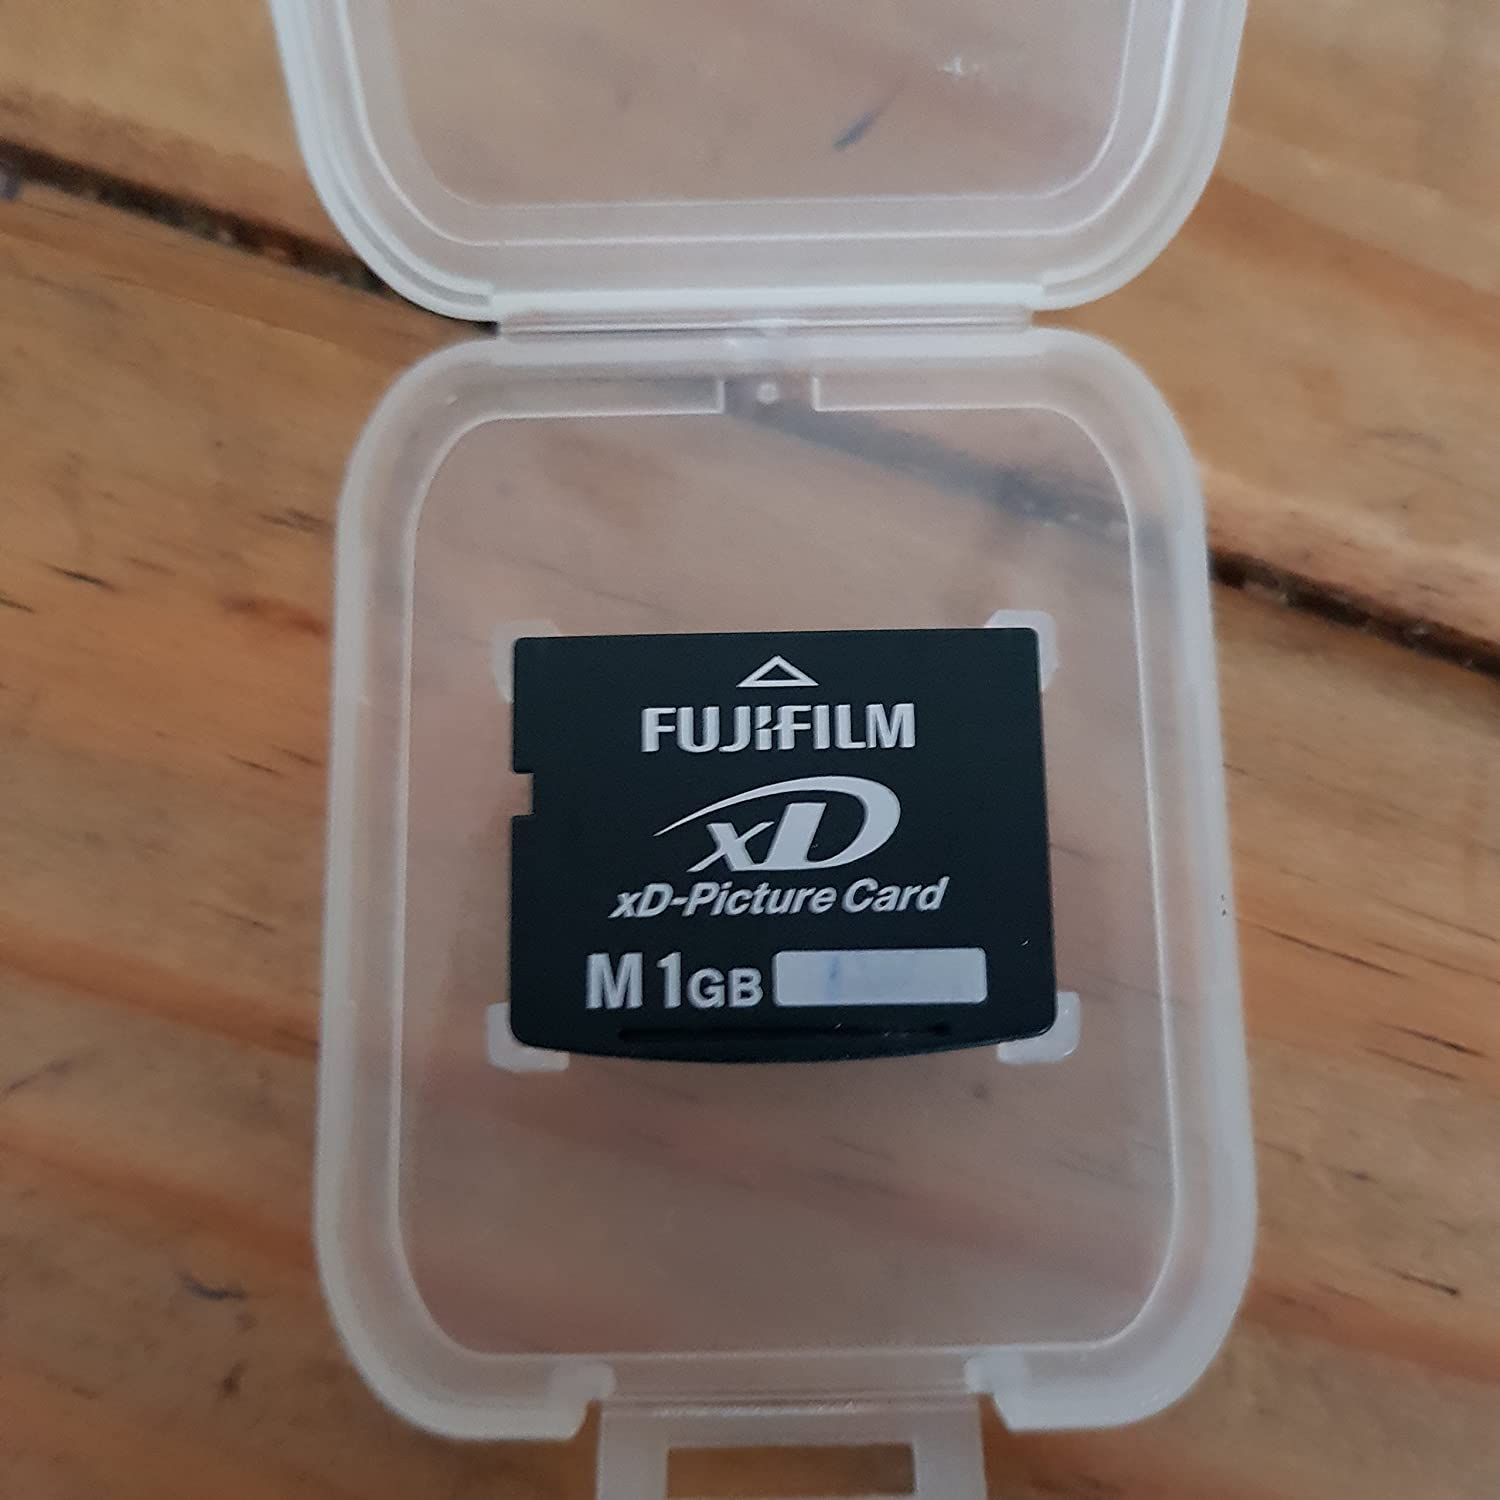 1 GB Fujifilm XD Memory Card Type M FujiFilm 1GB xD-Picture Card M